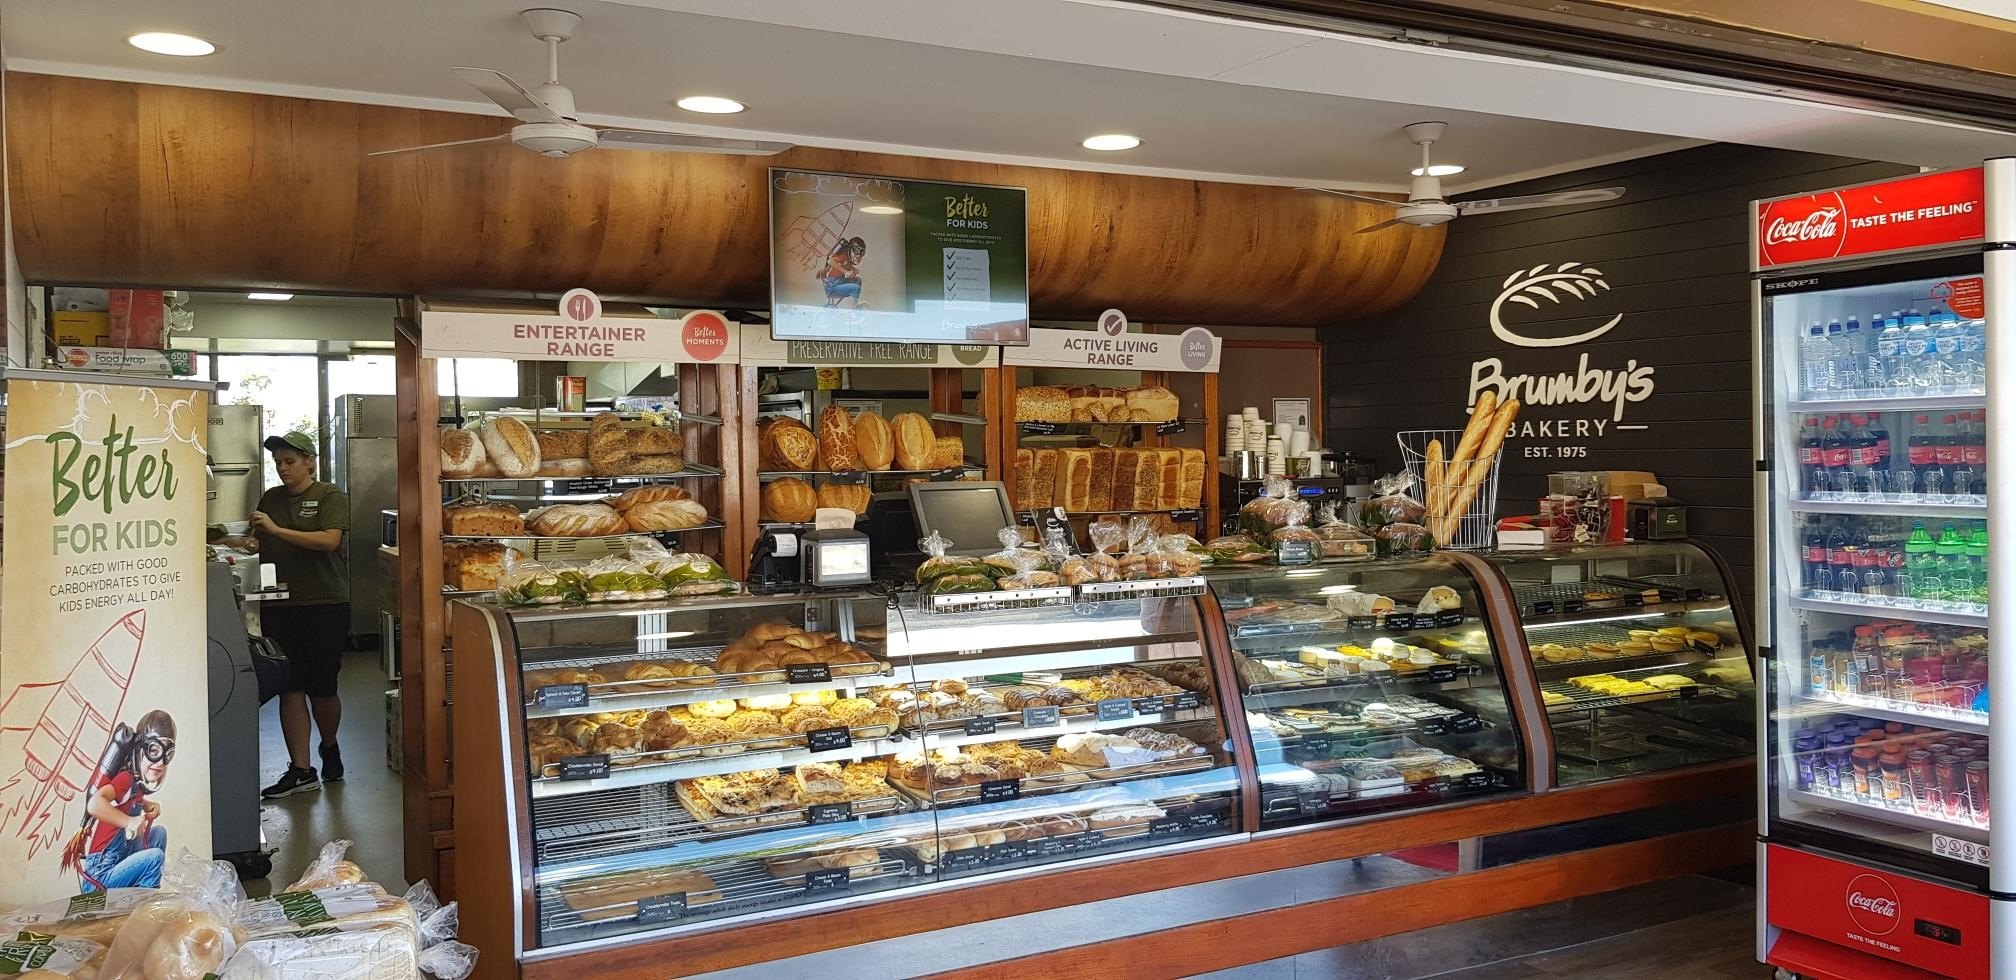 Amazing new-look Brumby's Bakery Franchise Resale Opportunity - Enquire today!